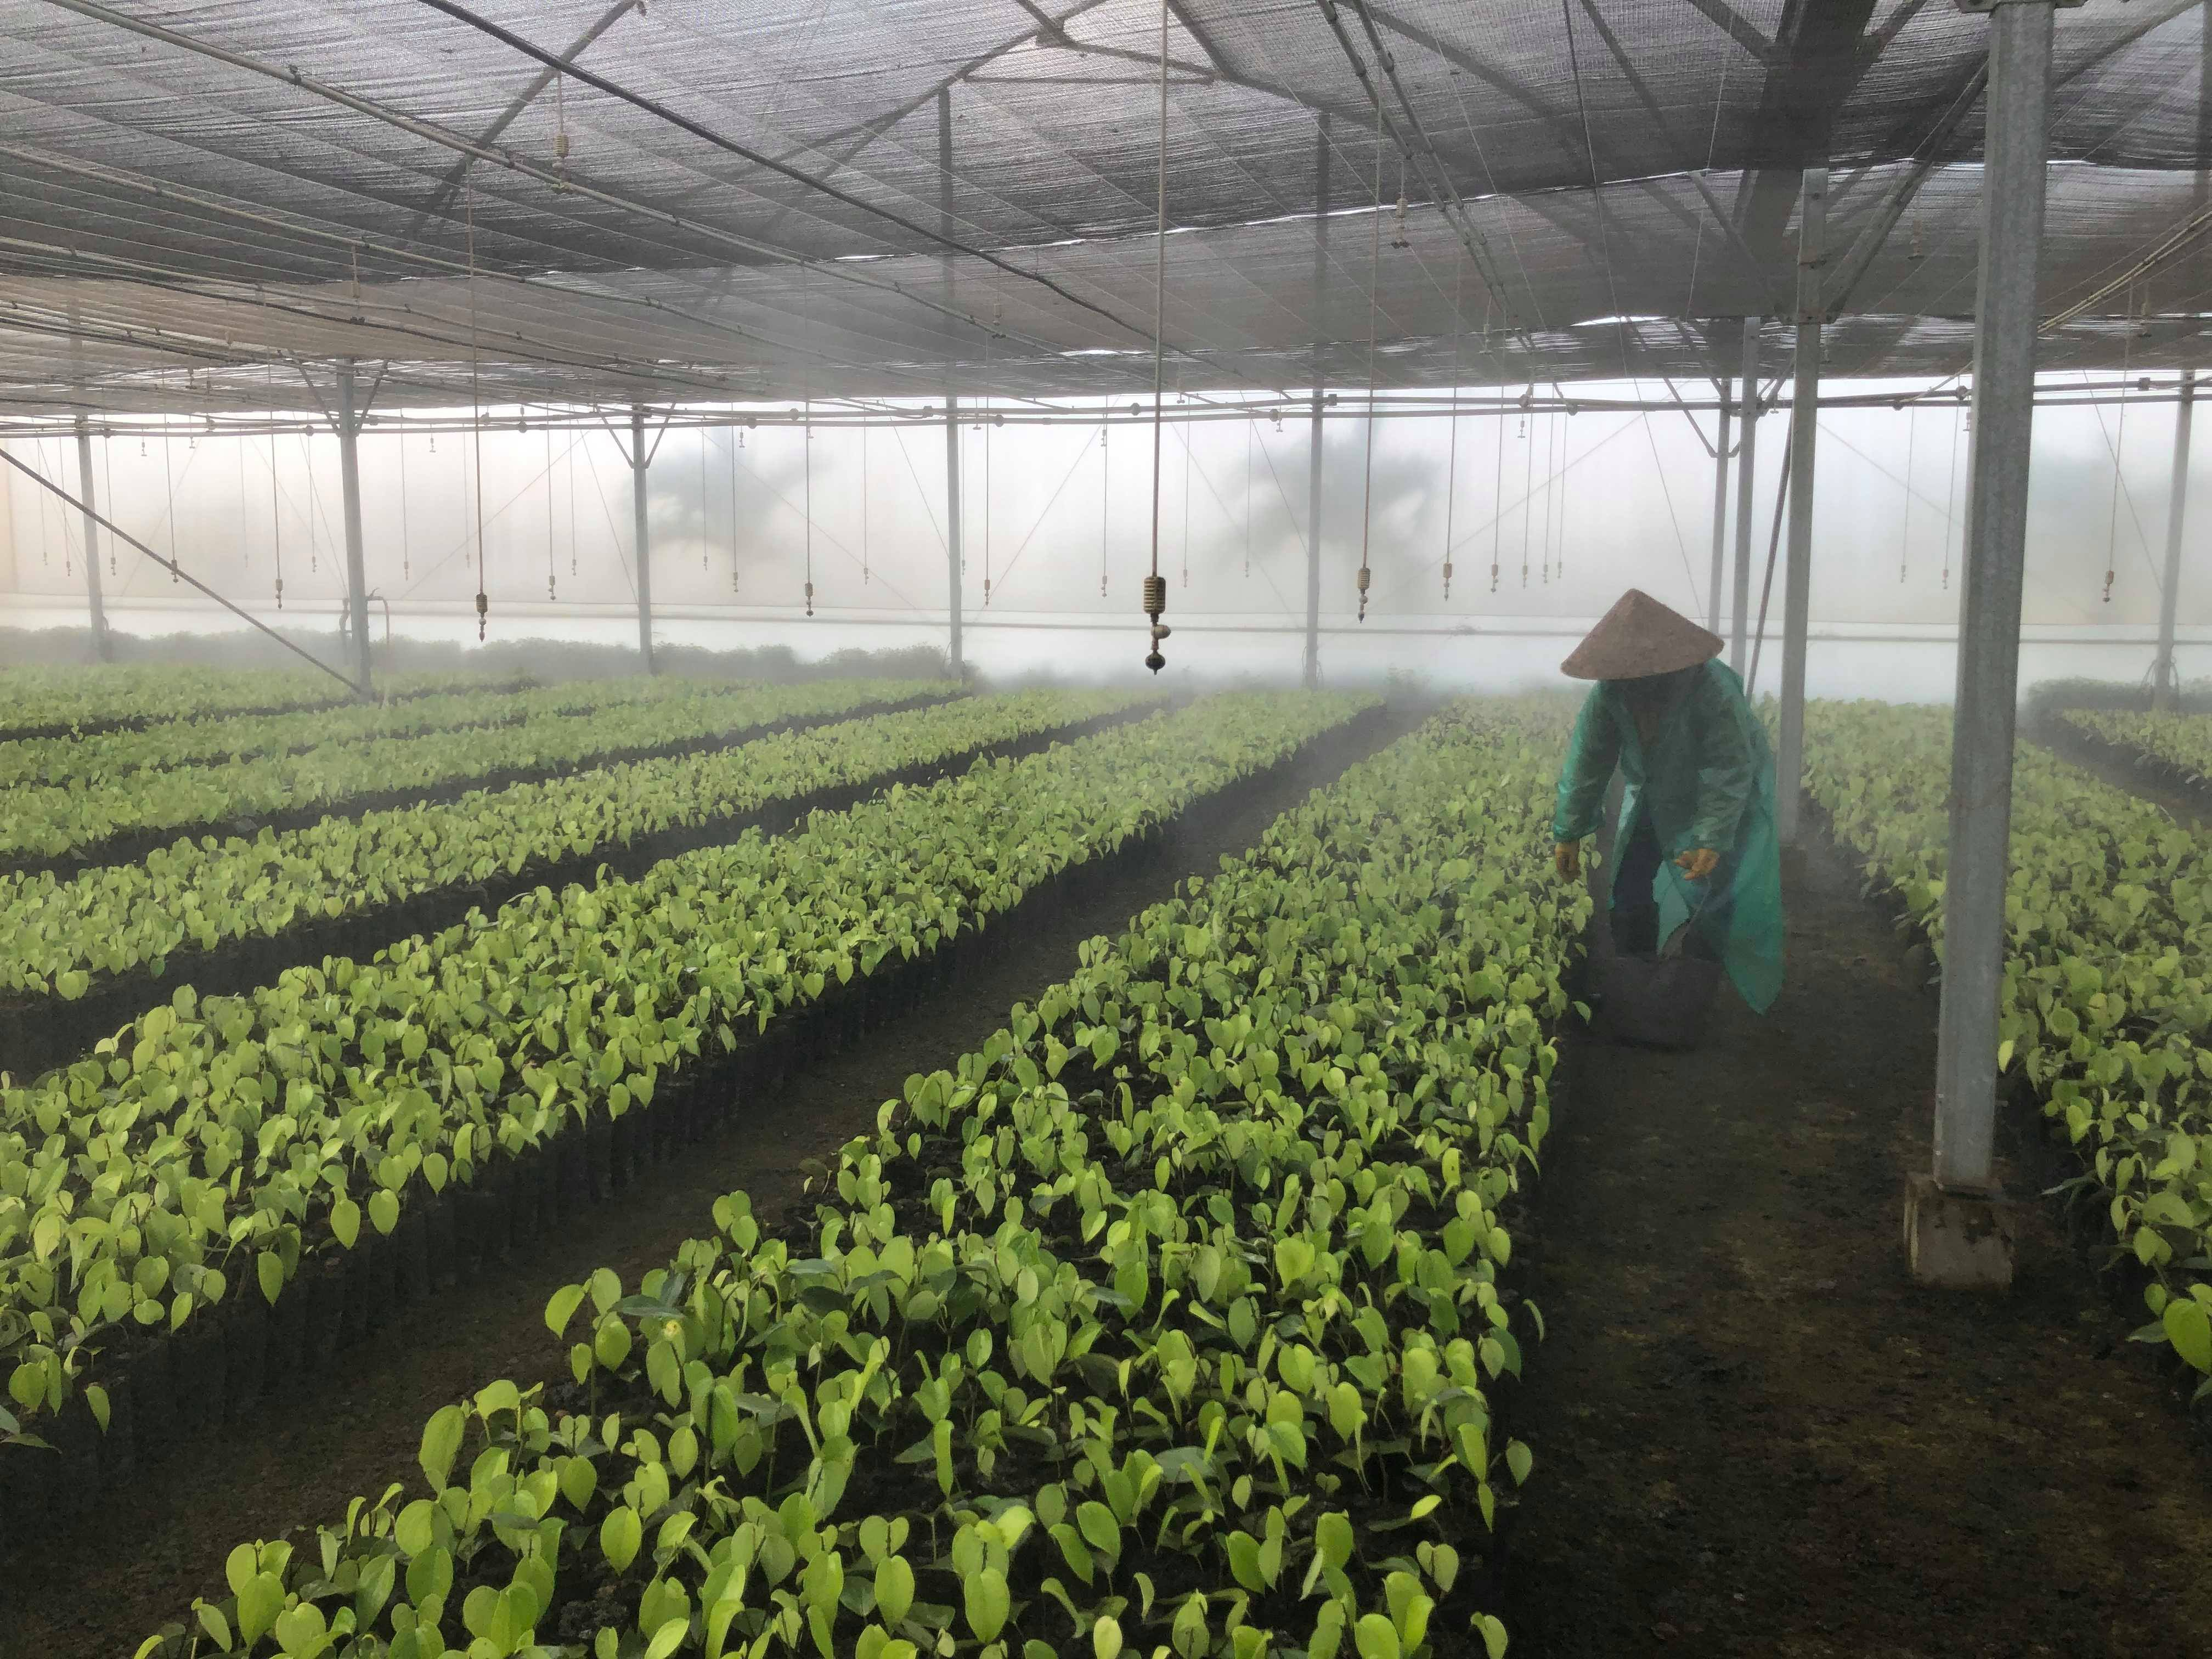 The pepper nursery in Olam's pepper plantation at Ia Le village, Chư Pưh district in Gia Lai province - Photo: Hong Van